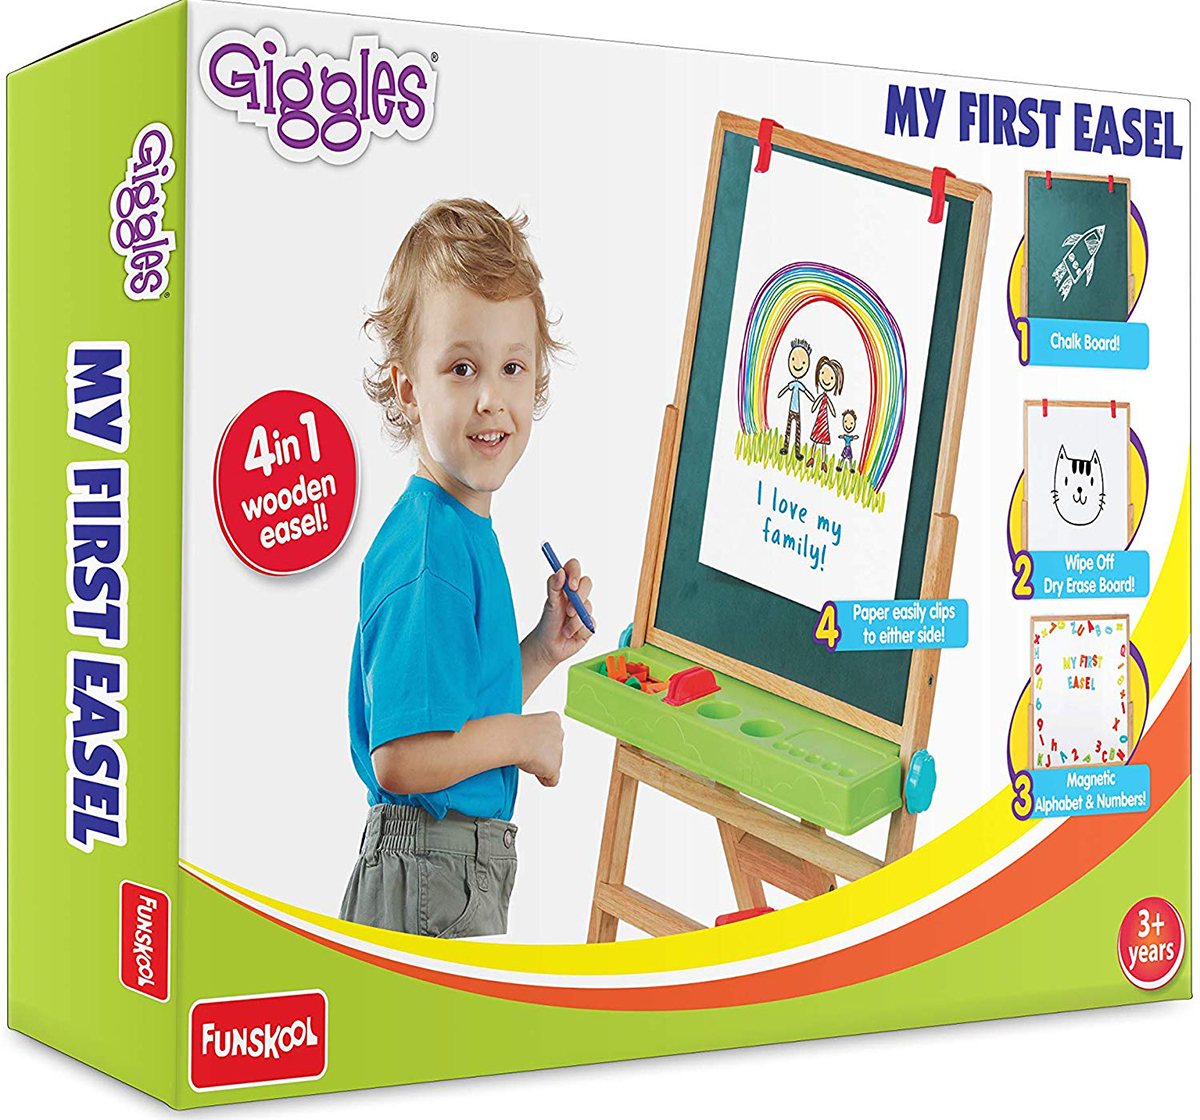 Giggles | Giggles My First New Easel - Brown Activity Table & Boards for Kids age 3Y+ (Brown)